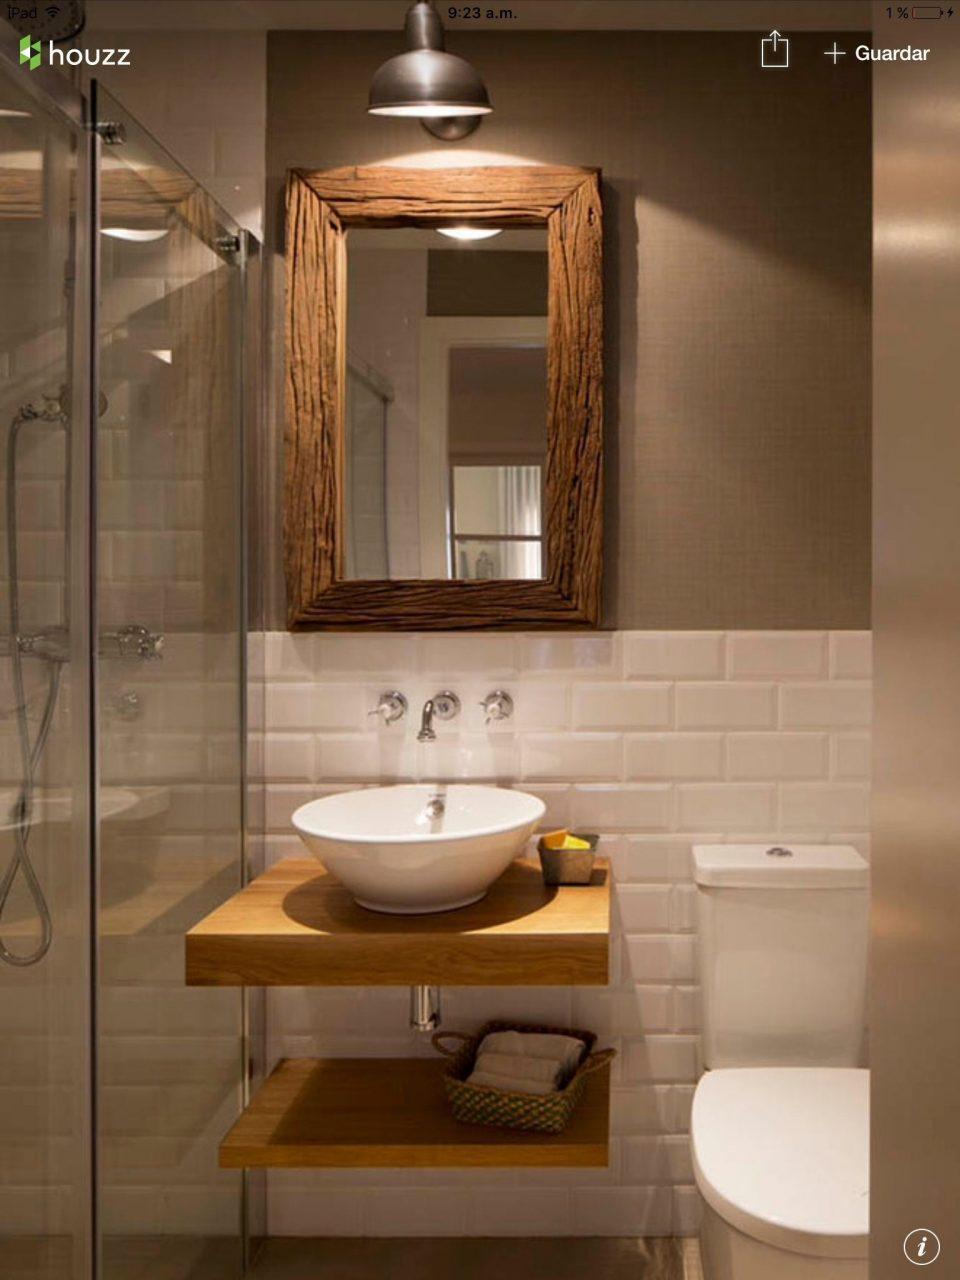 Bathroom Decorating Ideas Pinterest Best Of Simple Small Toilet